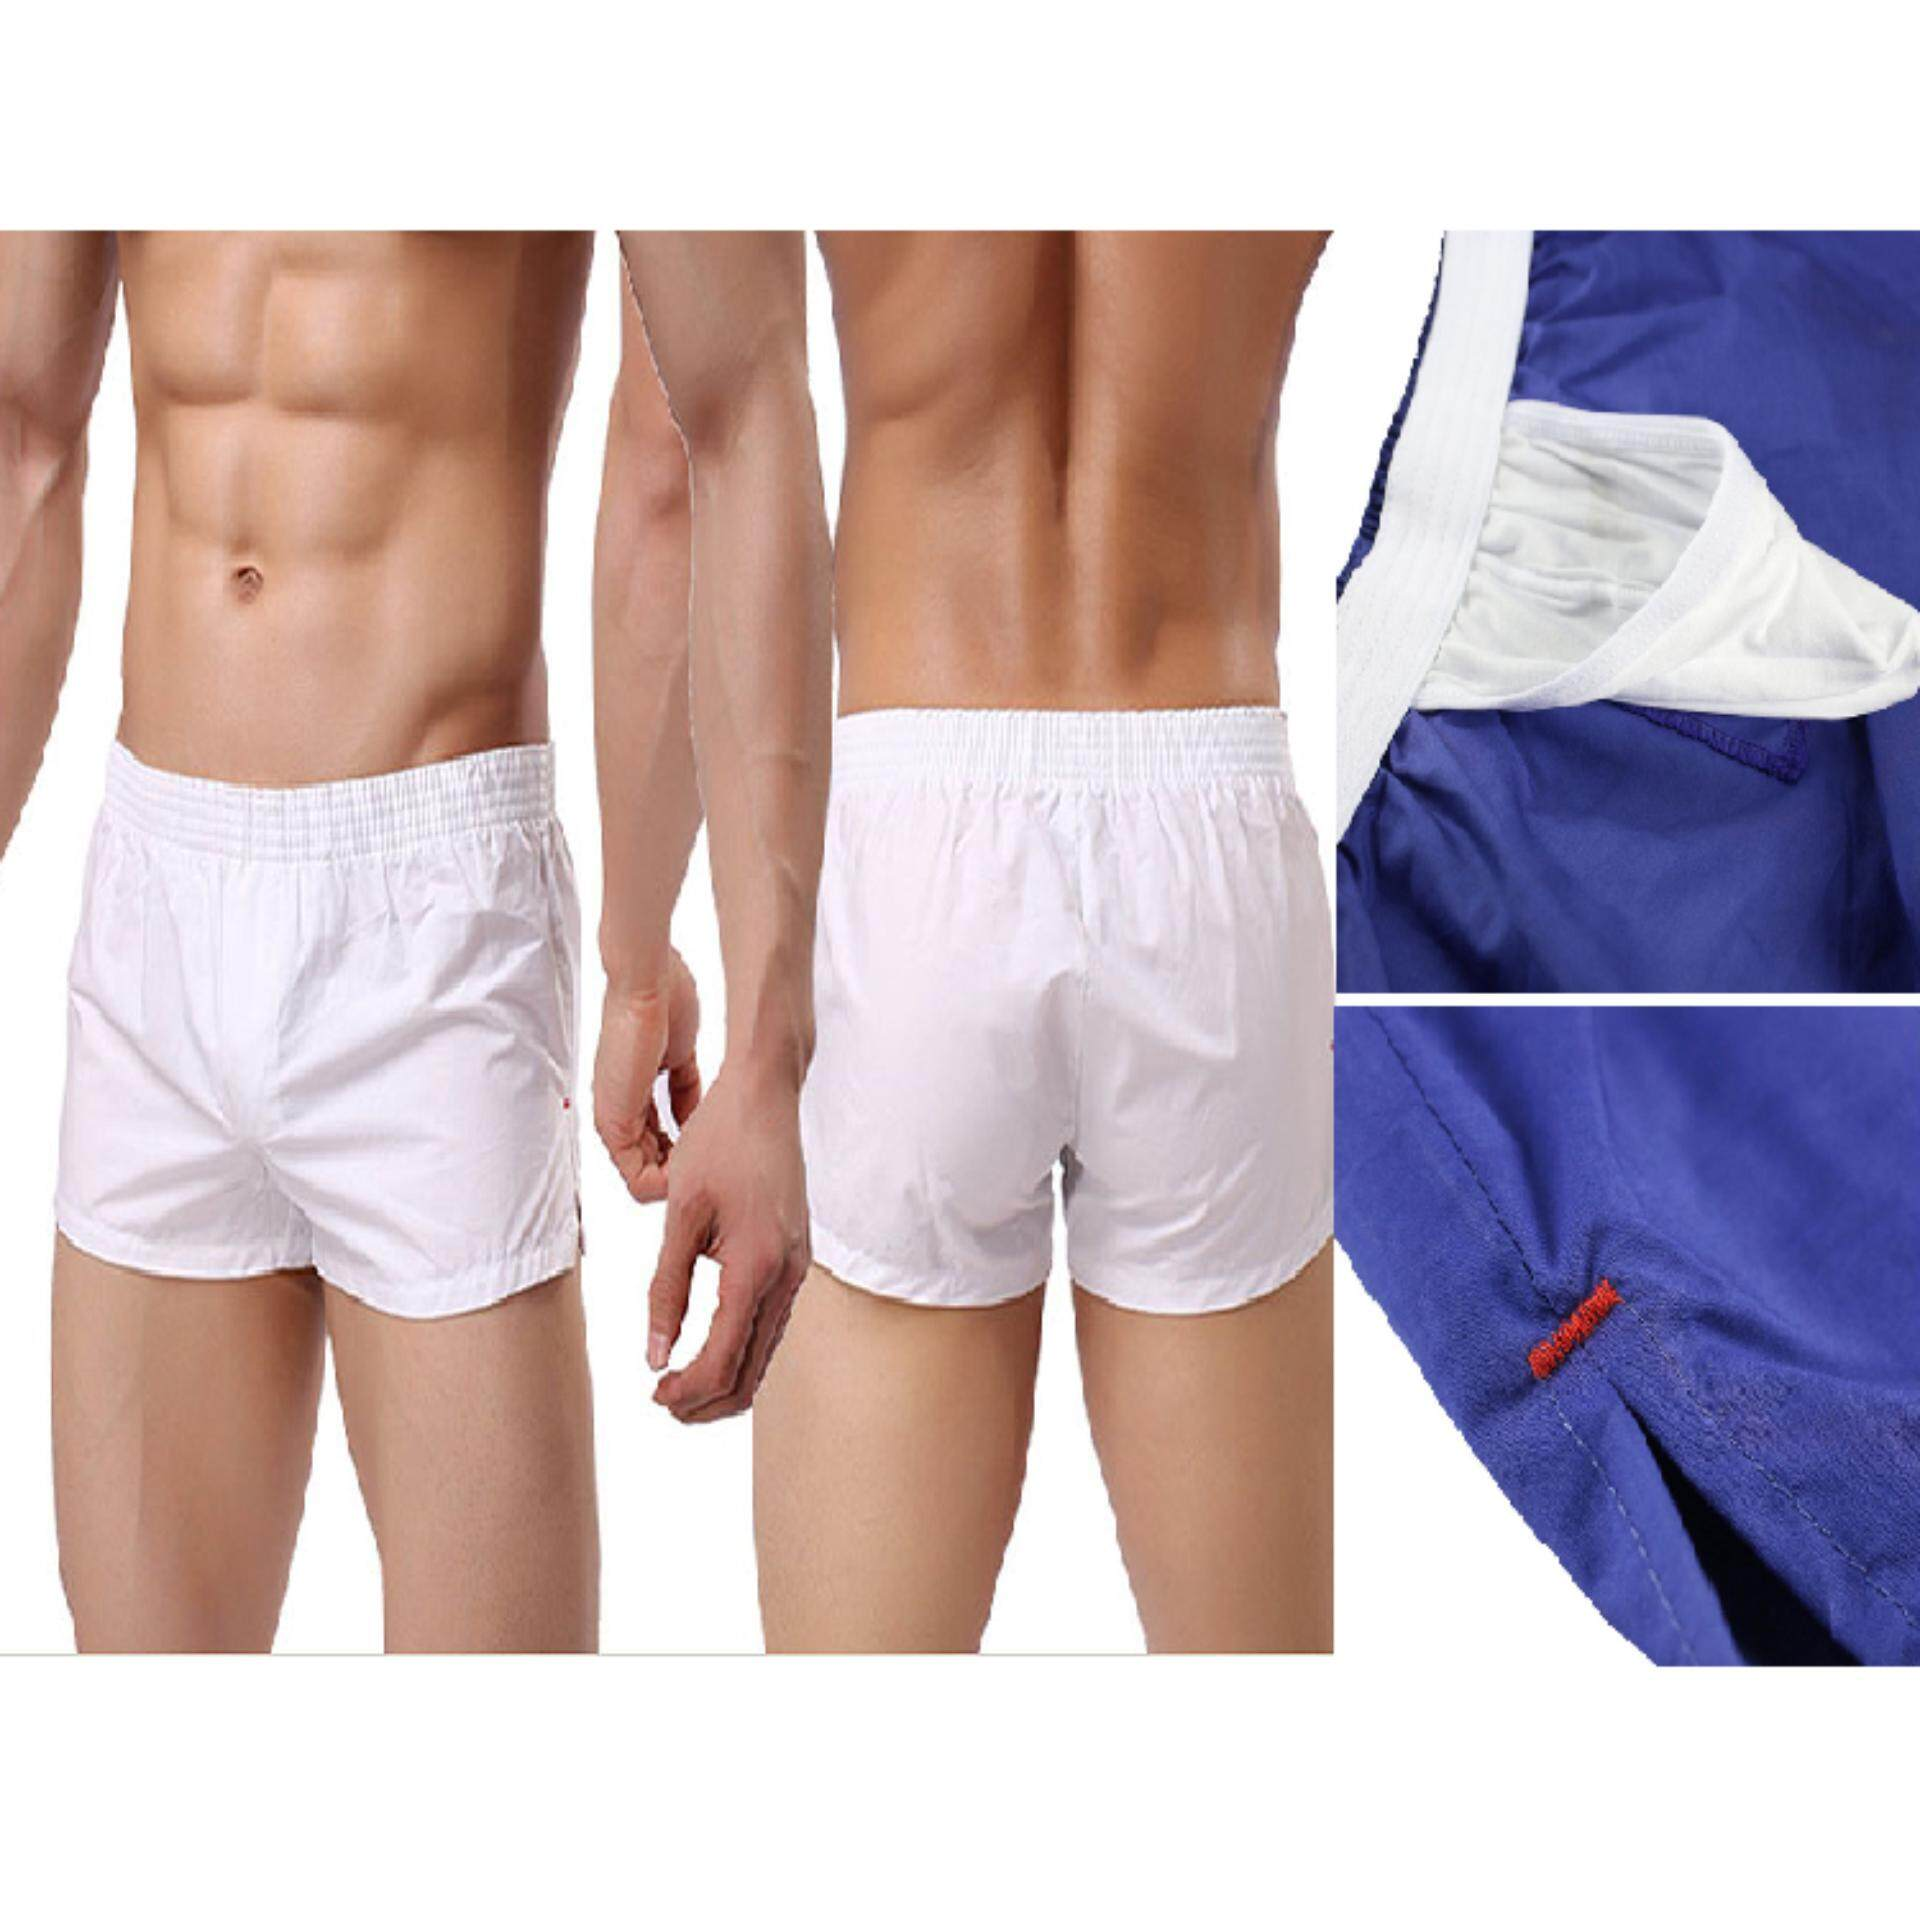 2030f501ba57 Men's Underwear - Solid White Boxer With Pouch